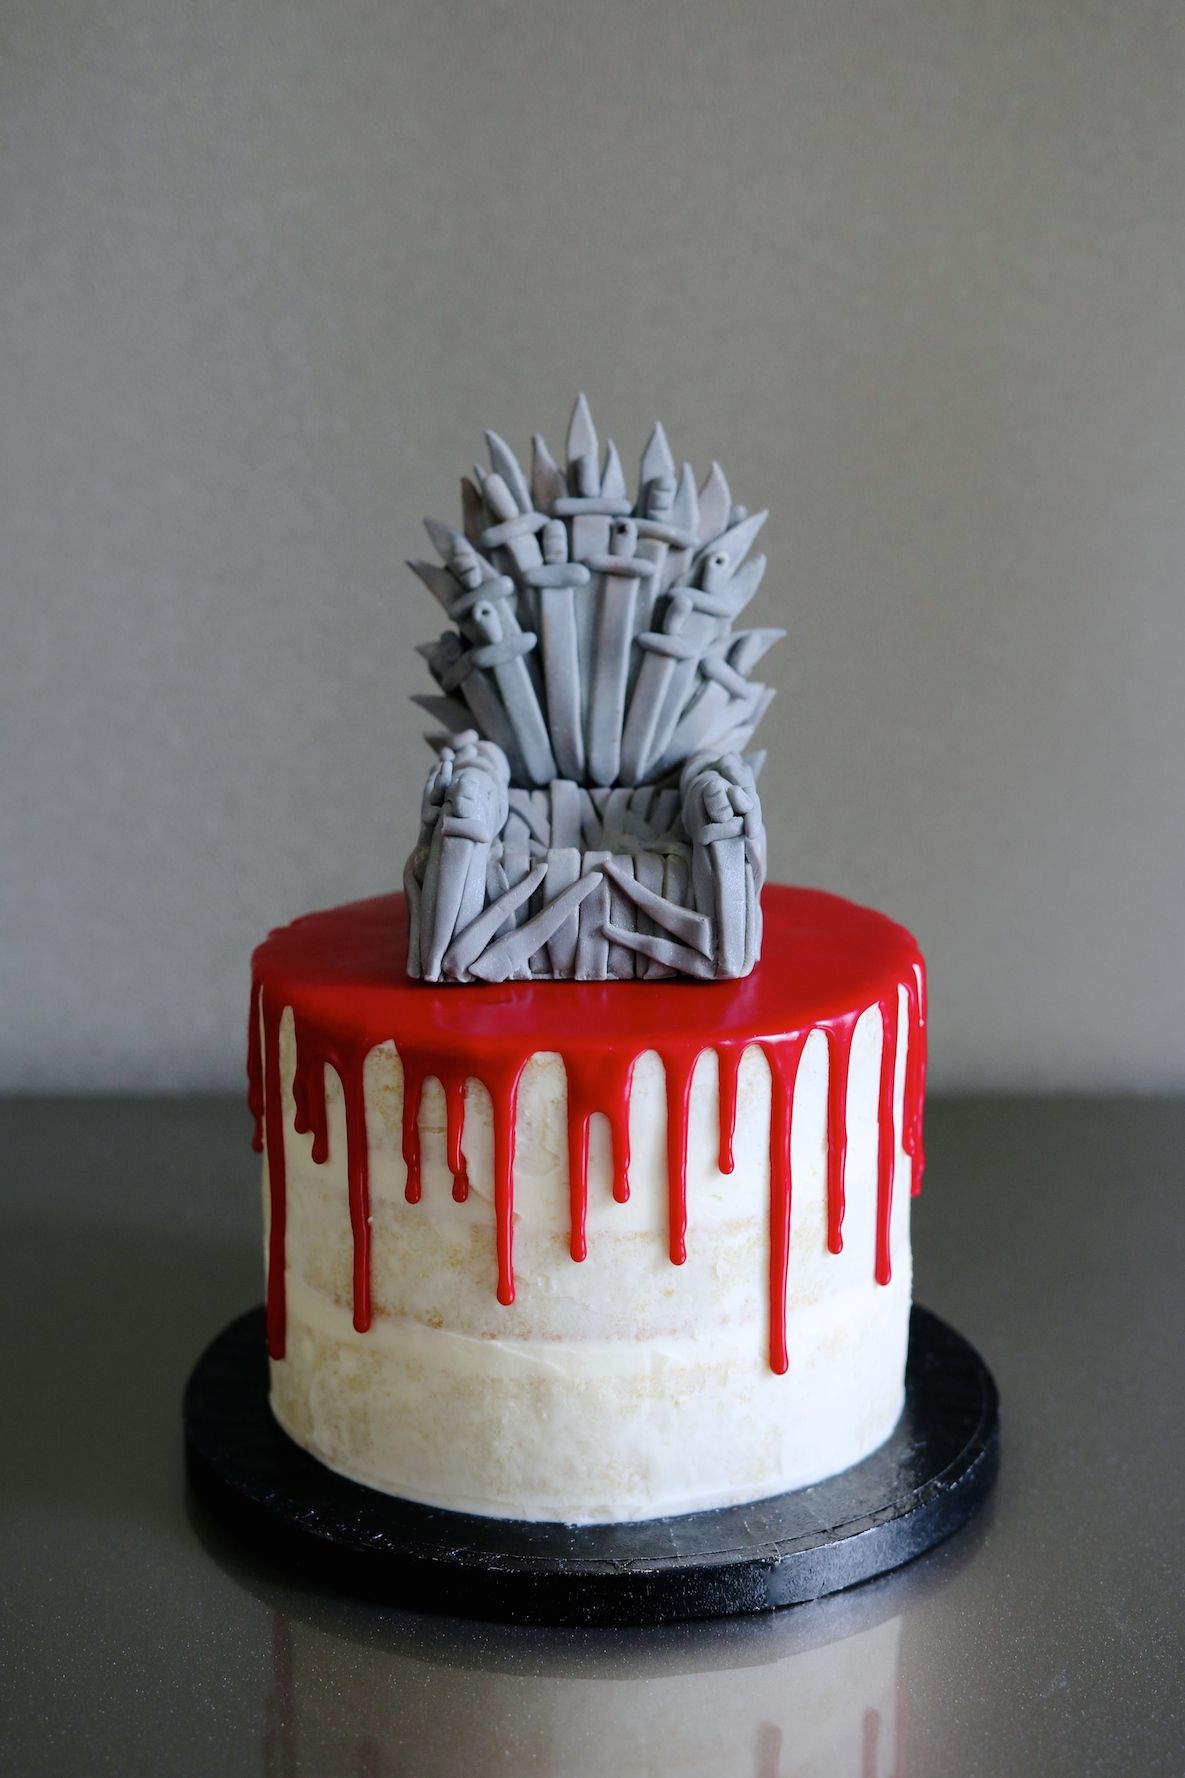 game of thrones afternoon crumbs cakes pinterest. Black Bedroom Furniture Sets. Home Design Ideas